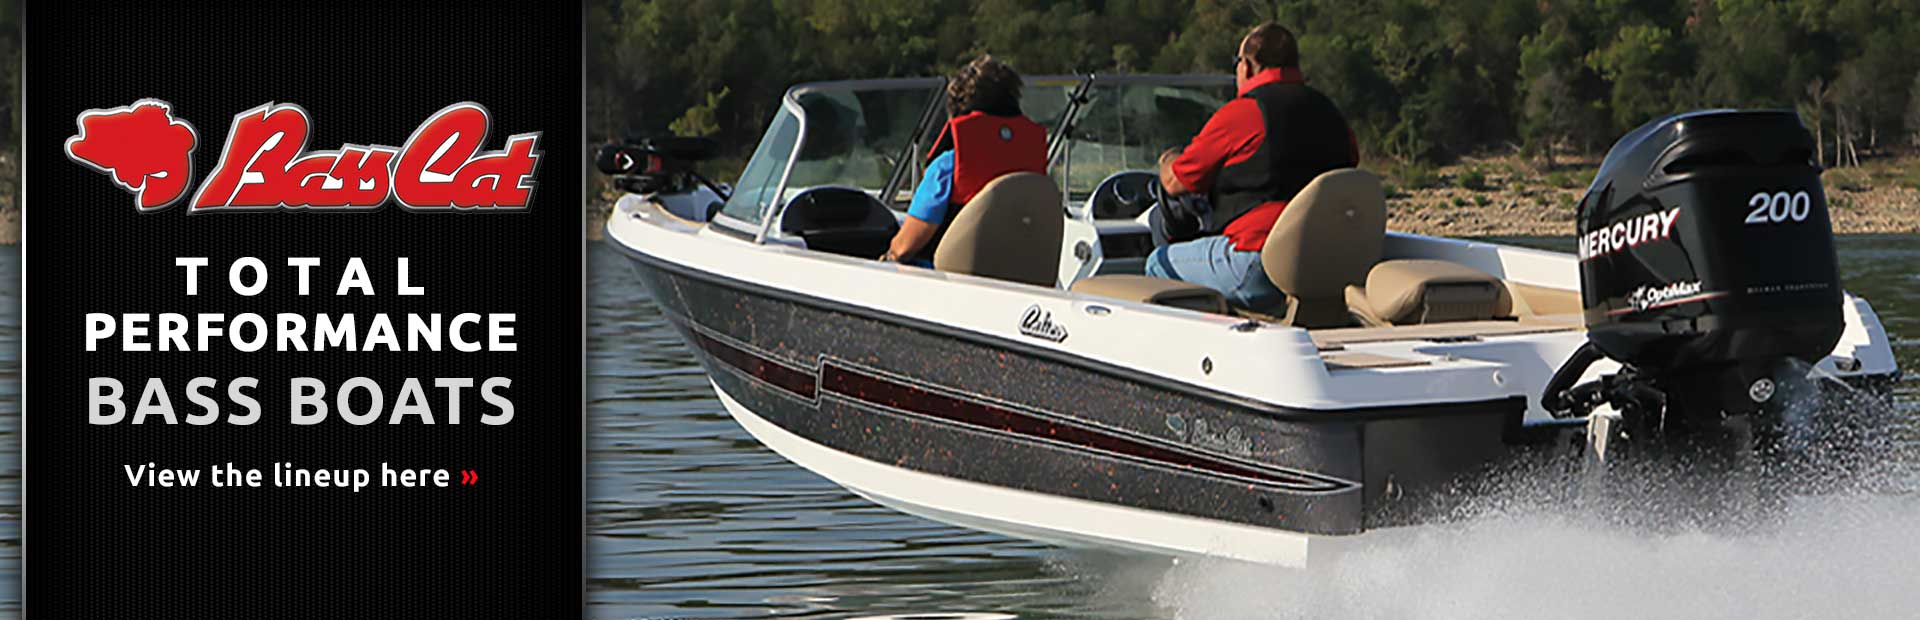 Bass Cat Boats: Click here to view the lineup.